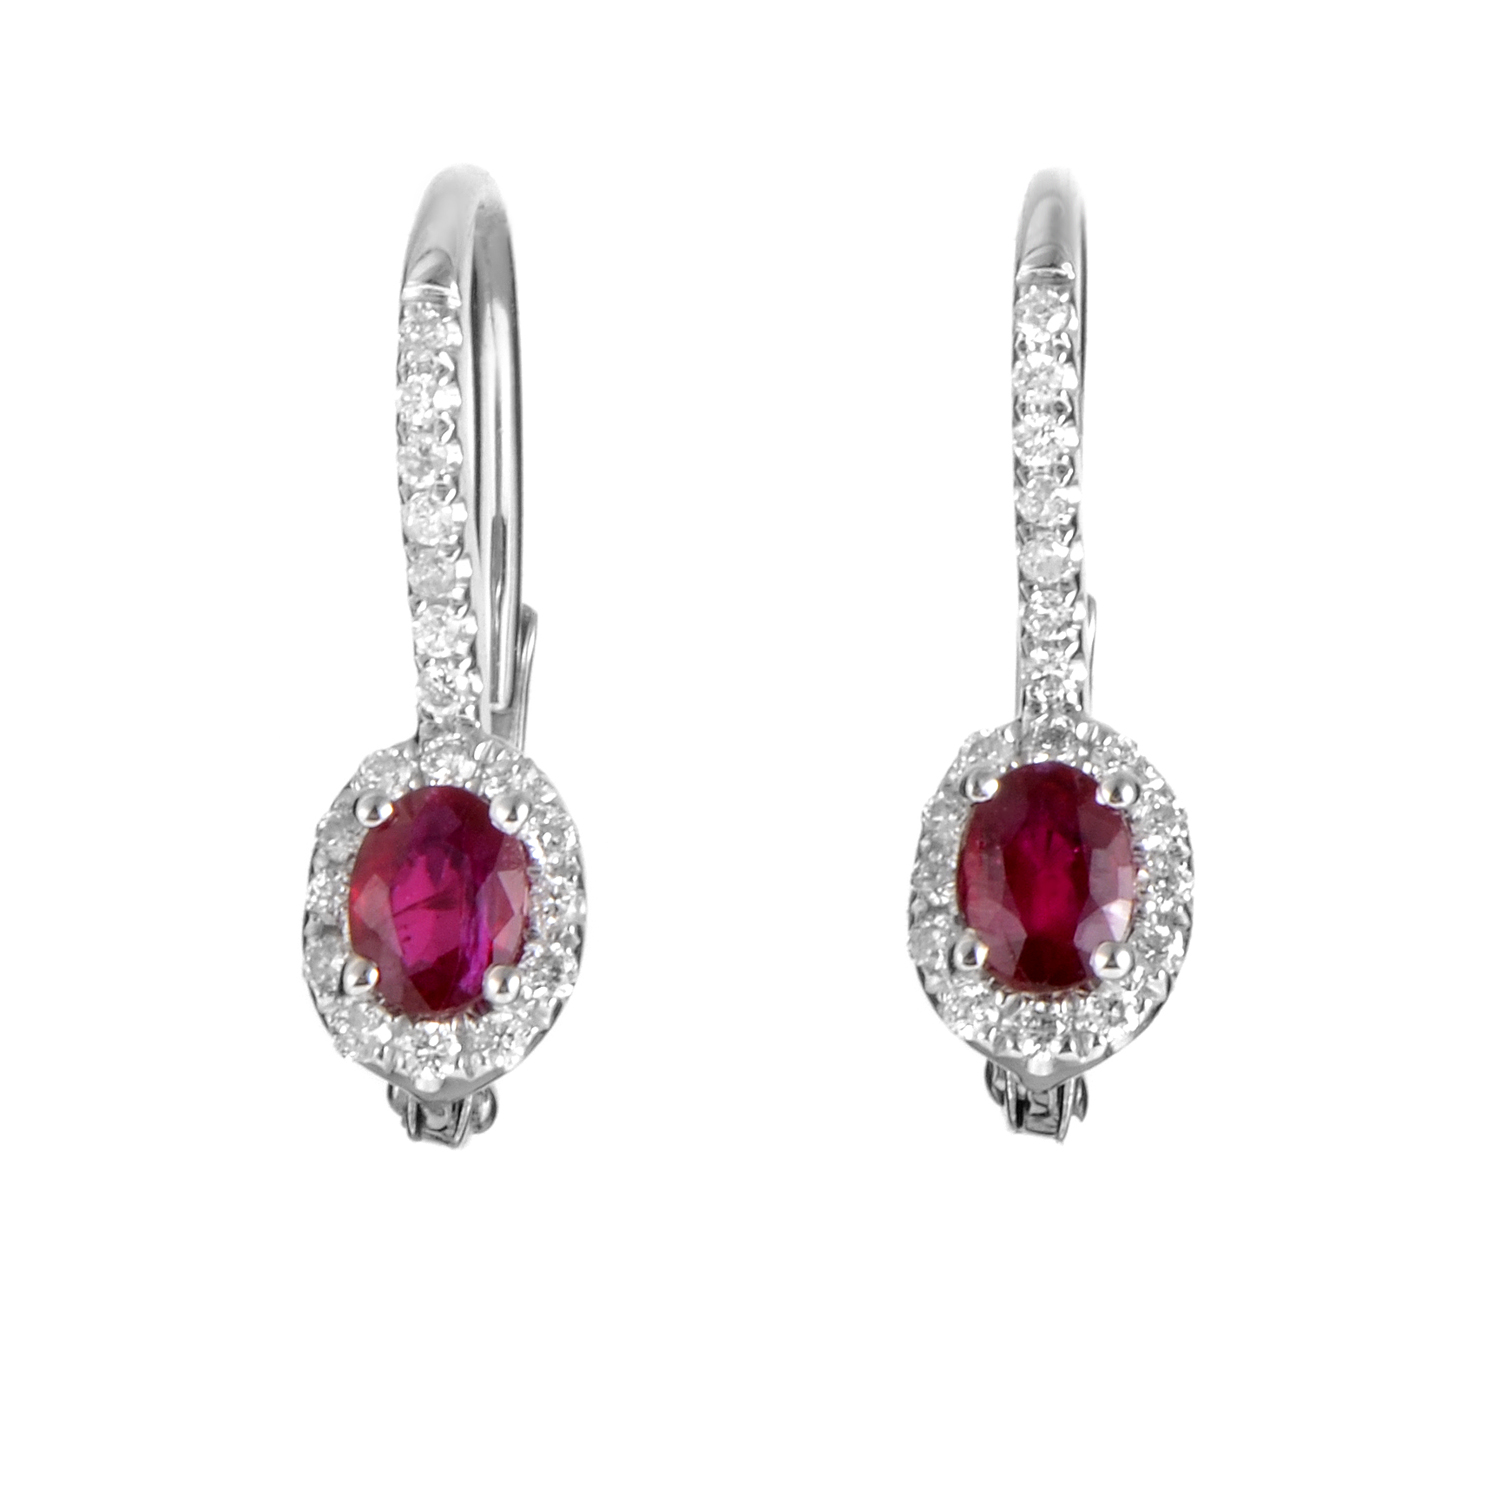 Women's 18K White Gold Diamond & Ruby Earrings SEUR70741RBZRU